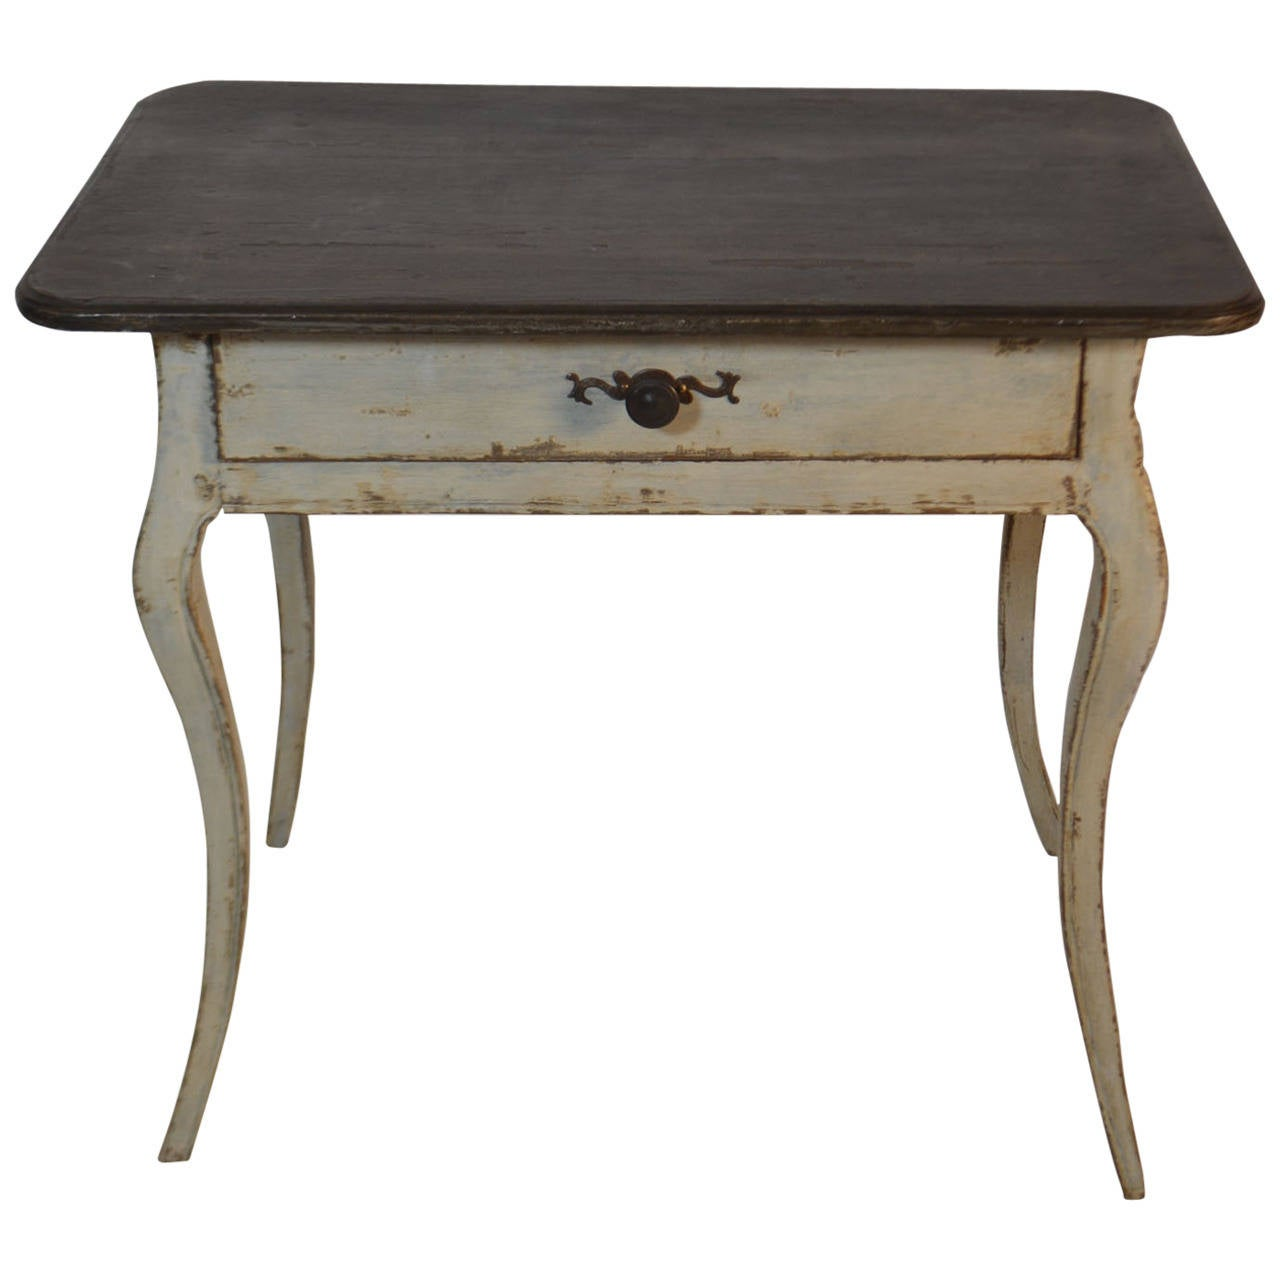 Louis xv period end table with drawer for sale at 1stdibs - Table louis xv ...